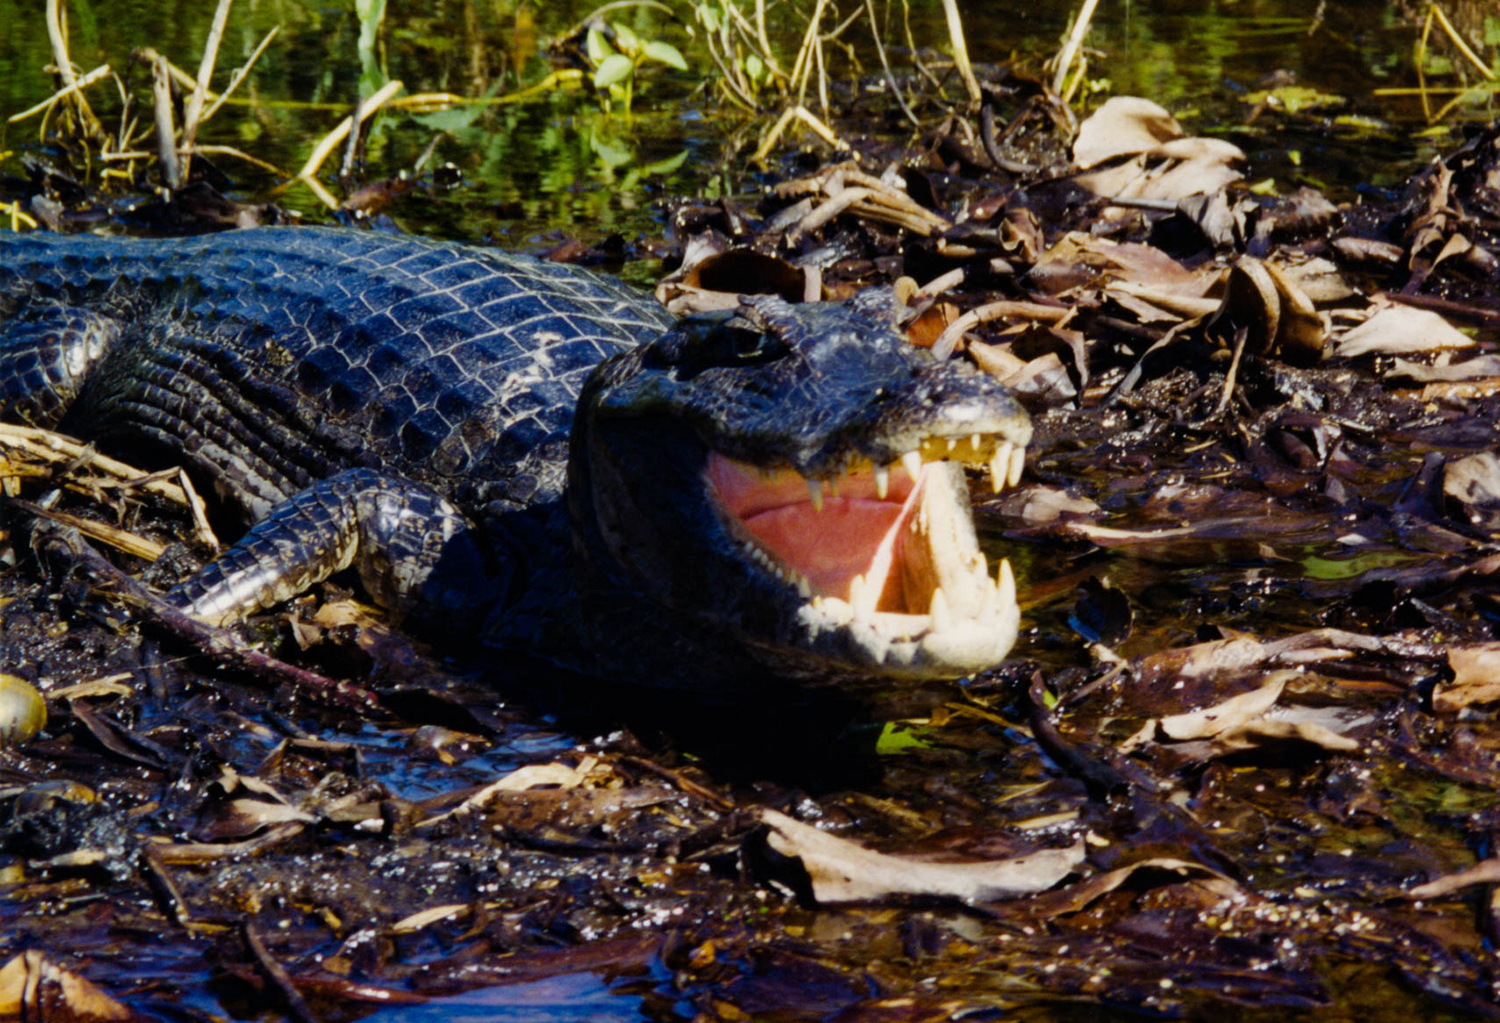 <p>A caiman (yacare) rests in the Pantanal wetlands of western Brazil. The menacing pose is actually a way for the caiman to regulate its body temperature, although this photographer must admit it is a touch intimidating to get this close. Shot from a canoe somewhere in the Pantanal wetlands.<br /></p>